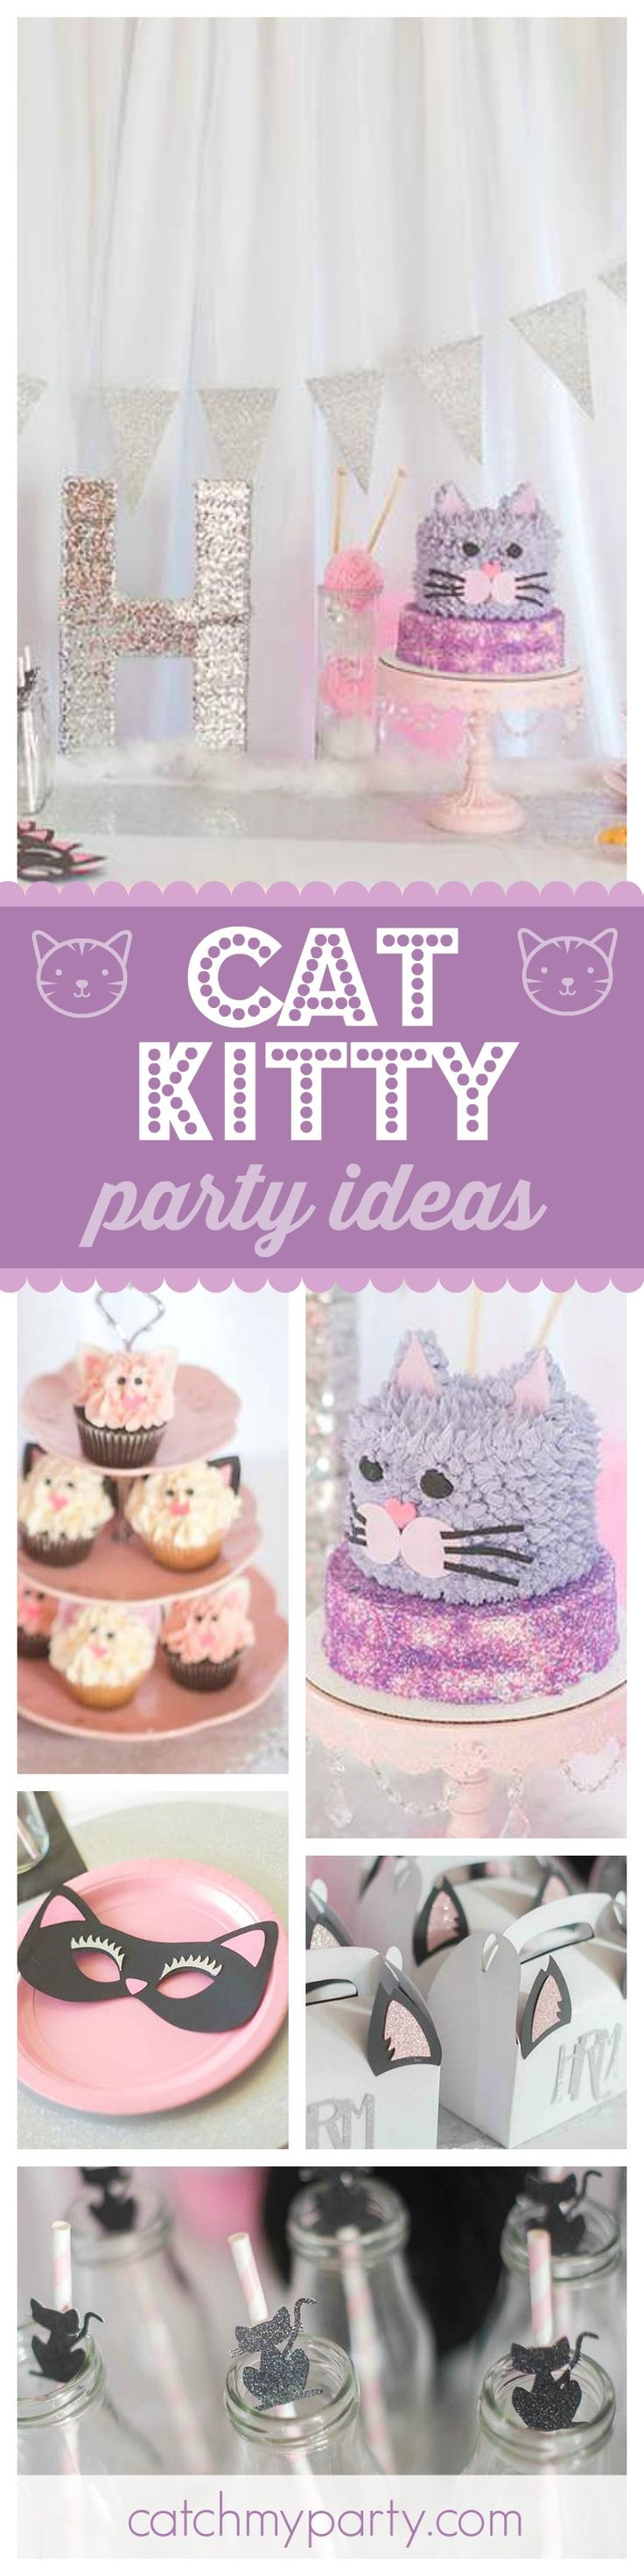 best constance images on pinterest birthdays cat party and